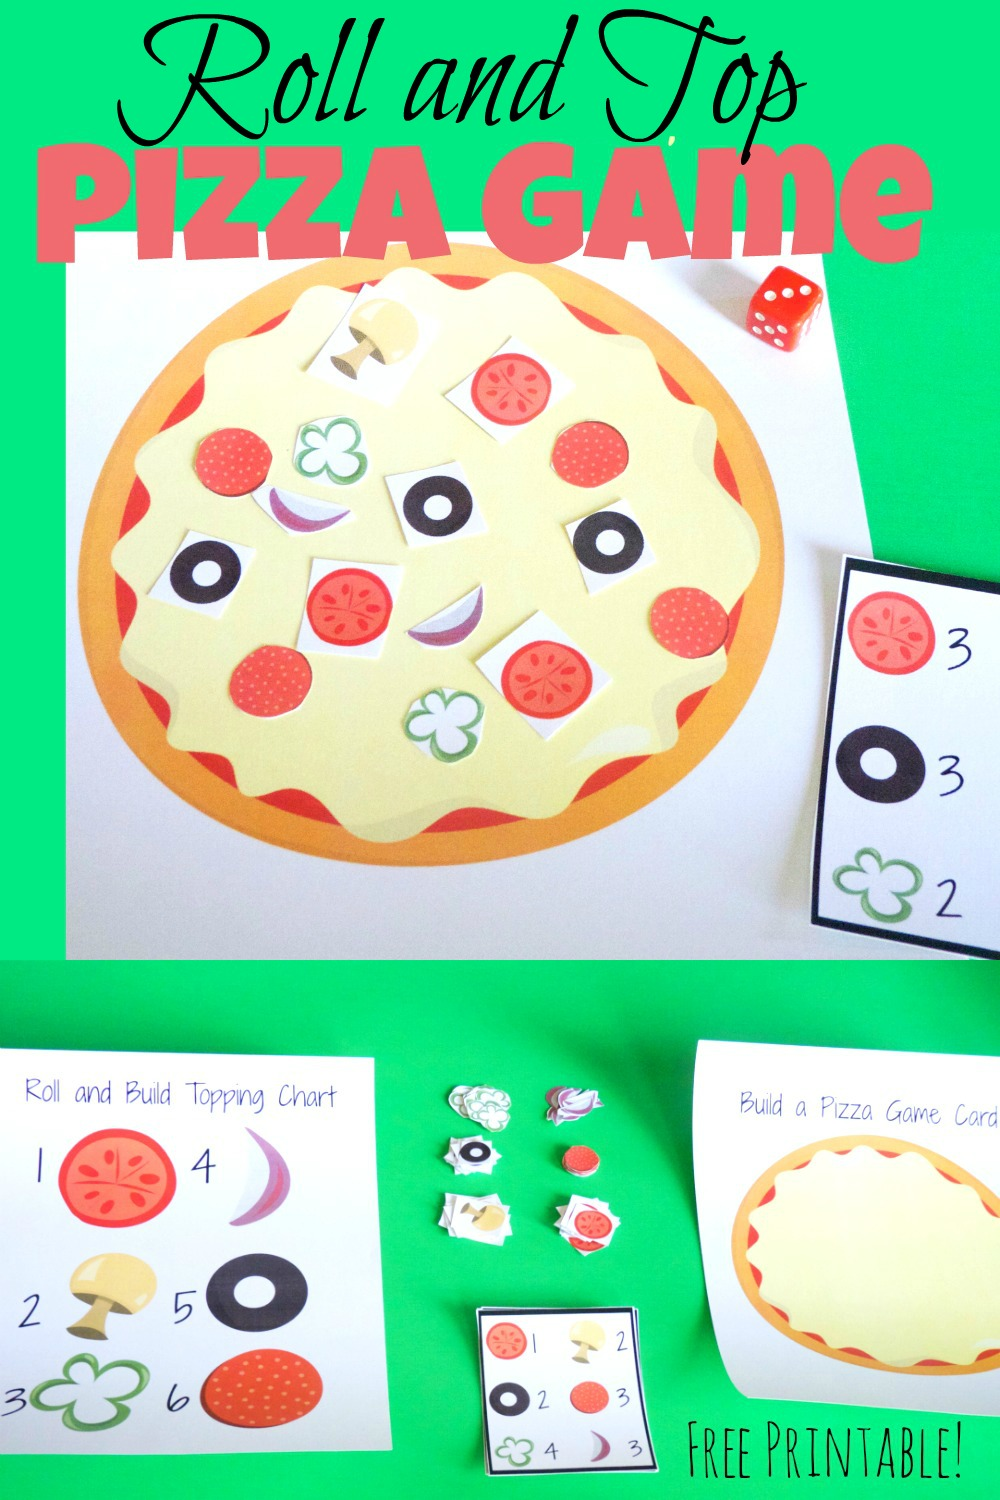 Fun and educational roll and top pizza game for kids